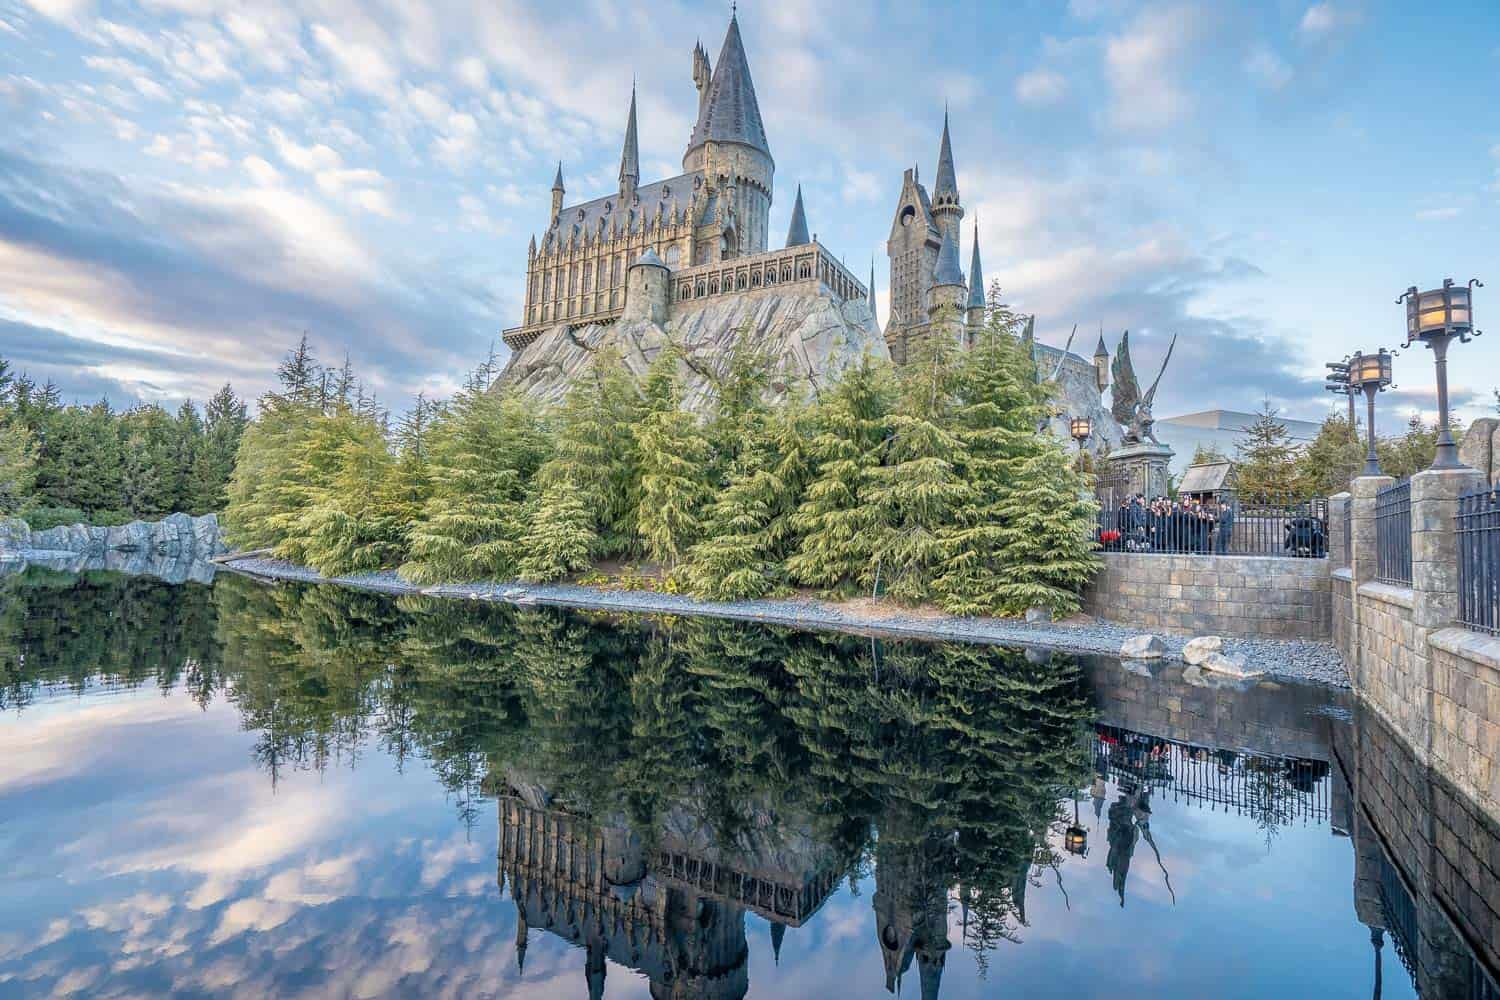 Hogwarts Castle reflected in the lake at The Wizarding World of Harry Potter at Universal Studios Japan in Osaka